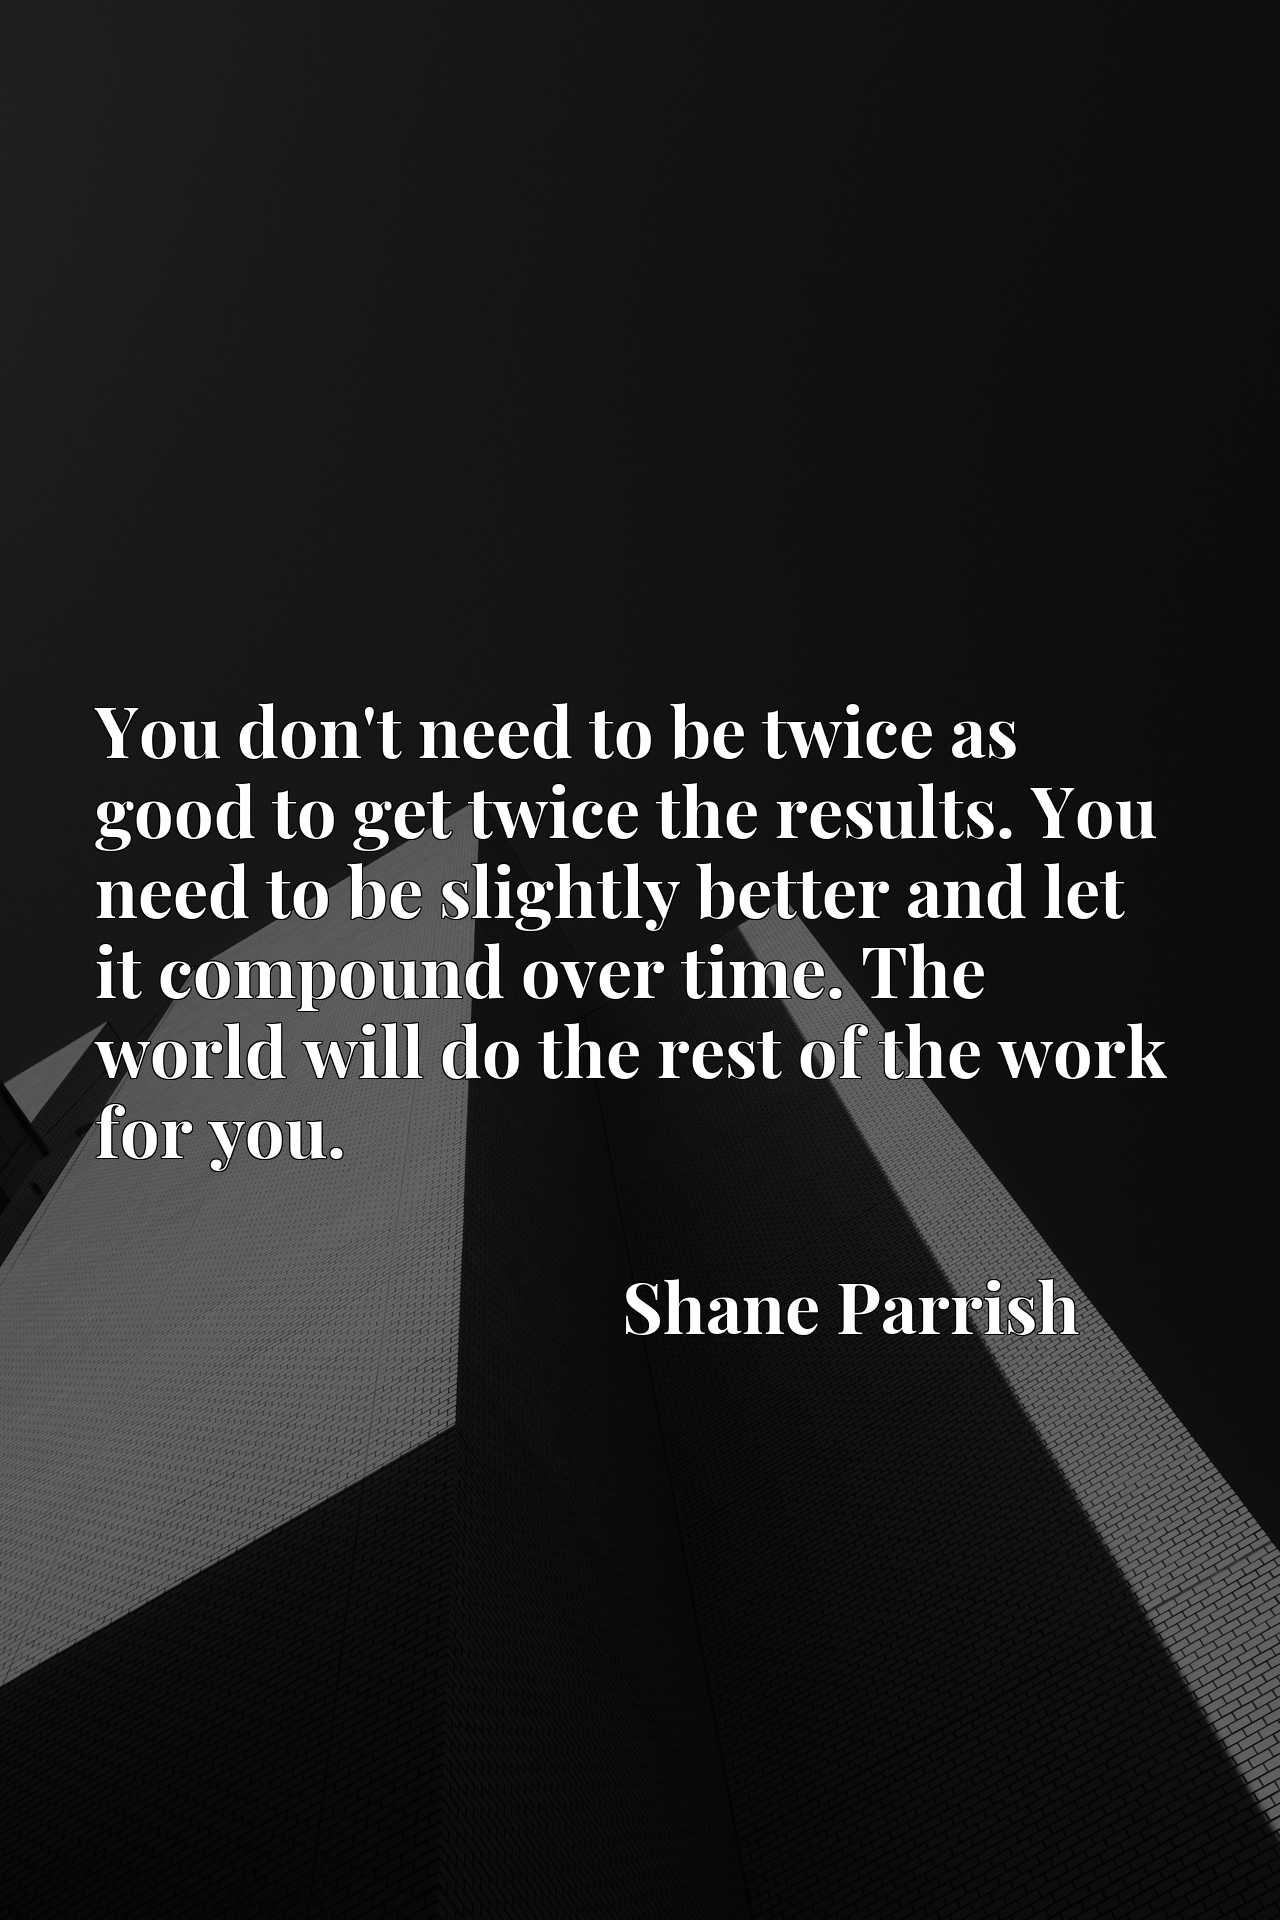 You don't need to be twice as good to get twice the results. You need to be slightly better and let it compound over time. The world will do the rest of the work for you.